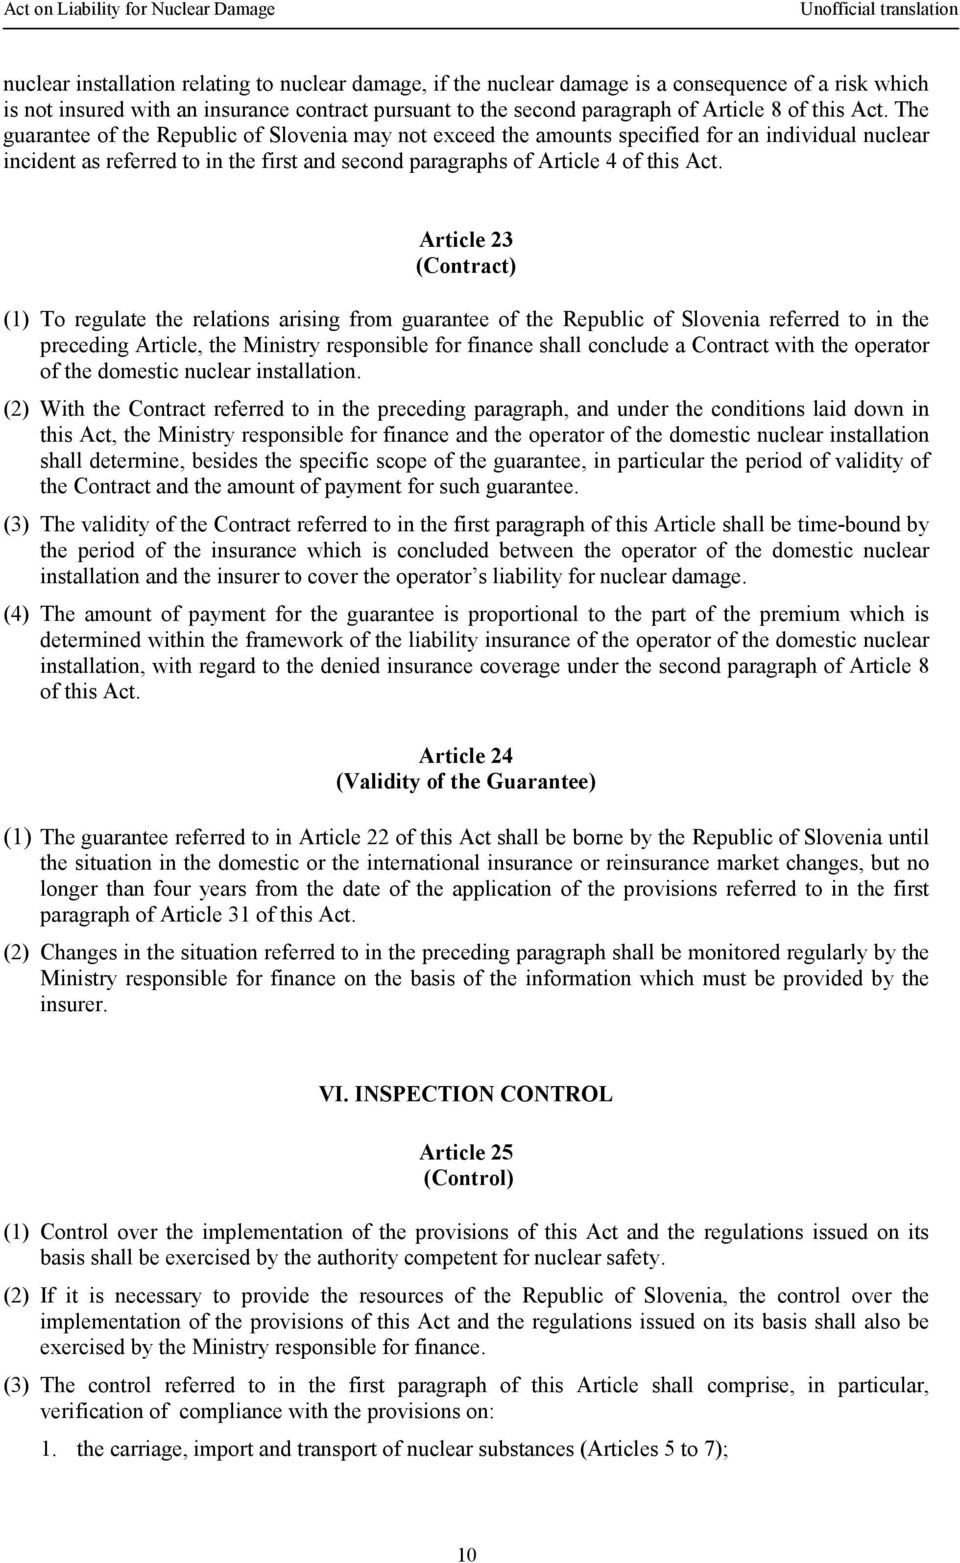 Article 23 (Contract) (1) To regulate the relations arising from guarantee of the Republic of Slovenia referred to in the preceding Article, the Ministry responsible for finance shall conclude a